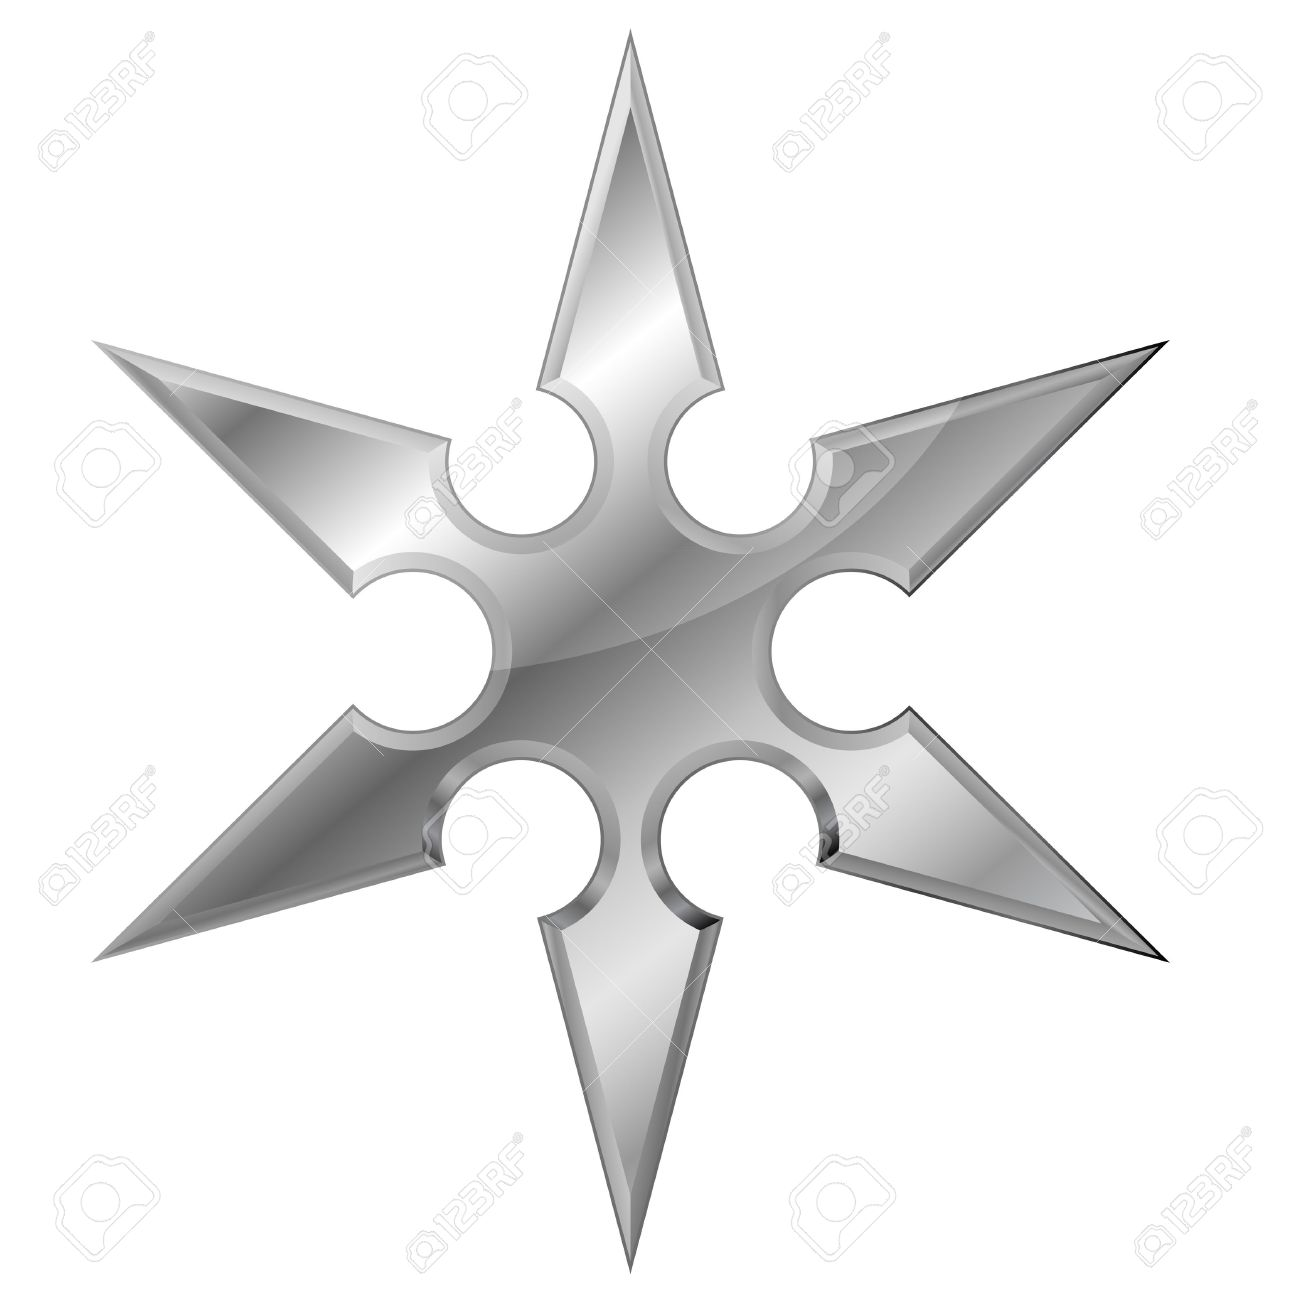 Shuriken clipart #8, Download drawings